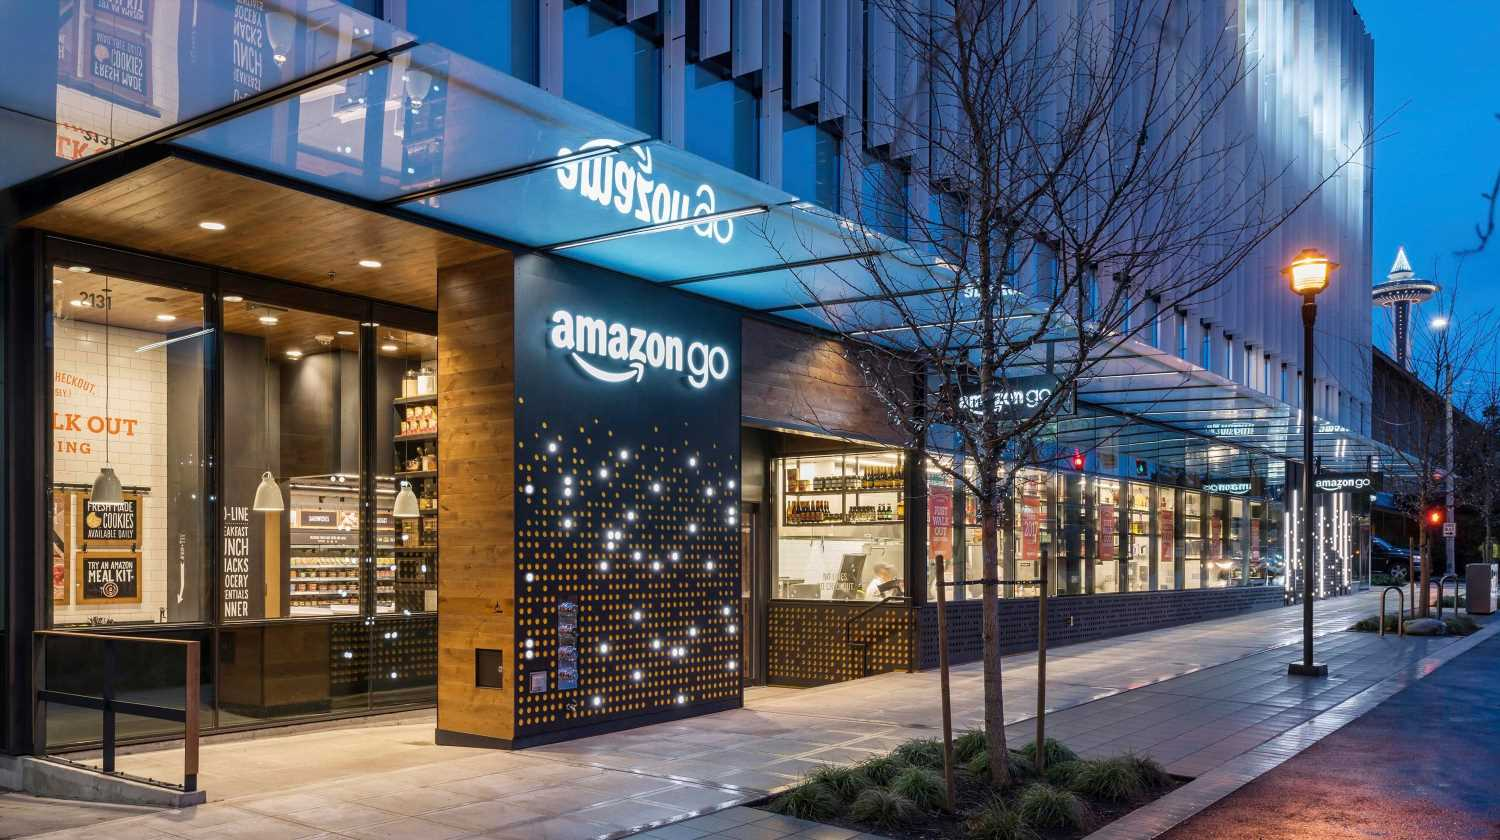 Amazon to open high-tech supermarket with no tills in Britain after launching stores in US